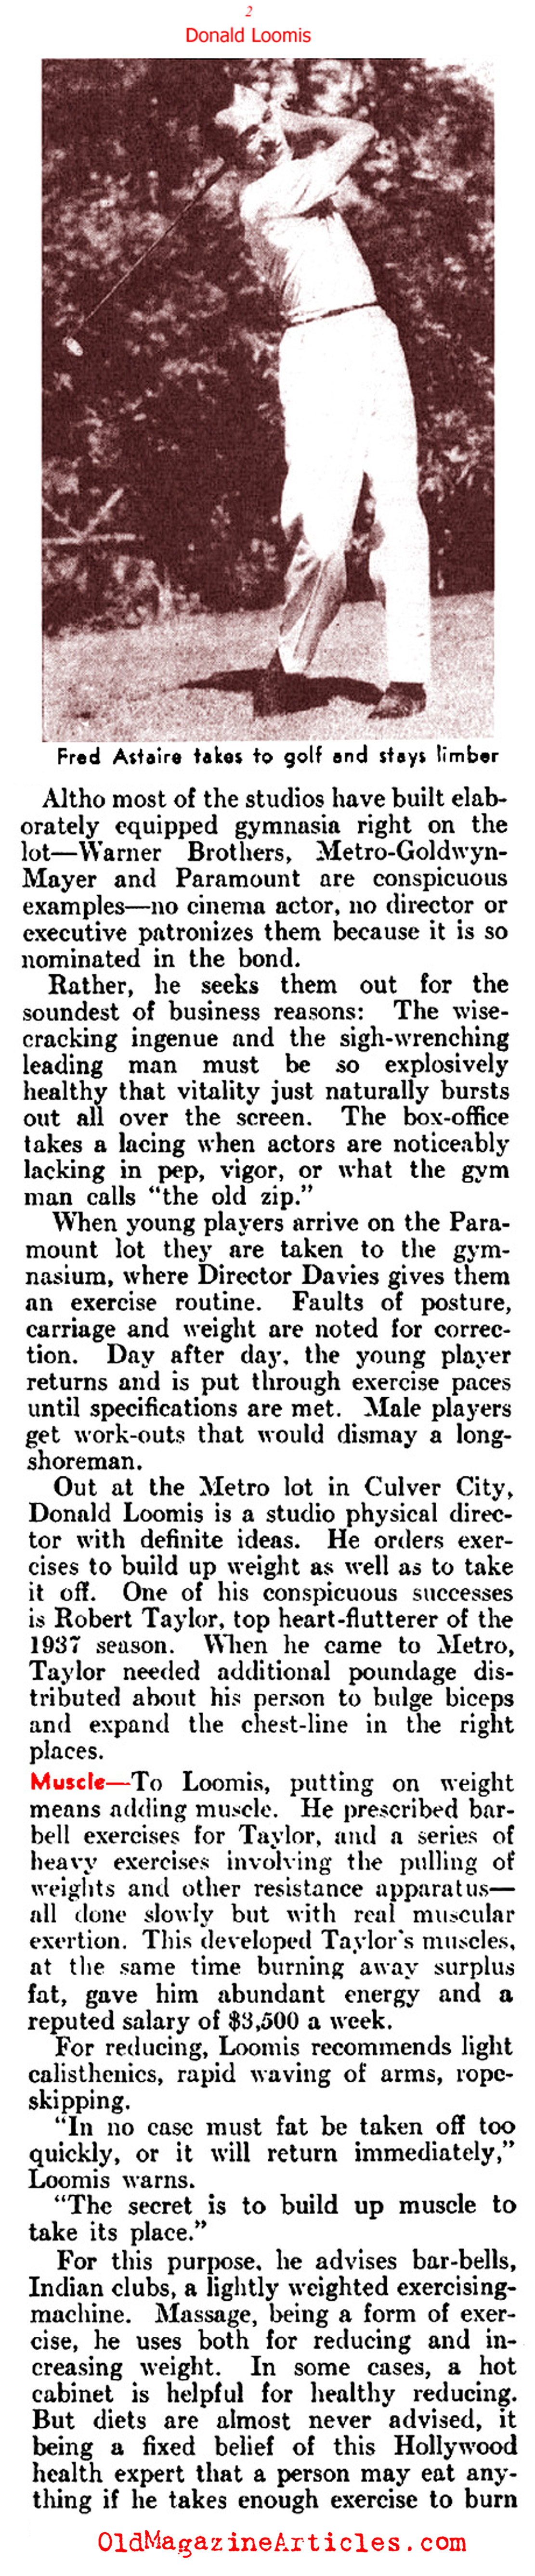 The Old Hollywood Way to Physical Perfection (Literary Digest, 1937)